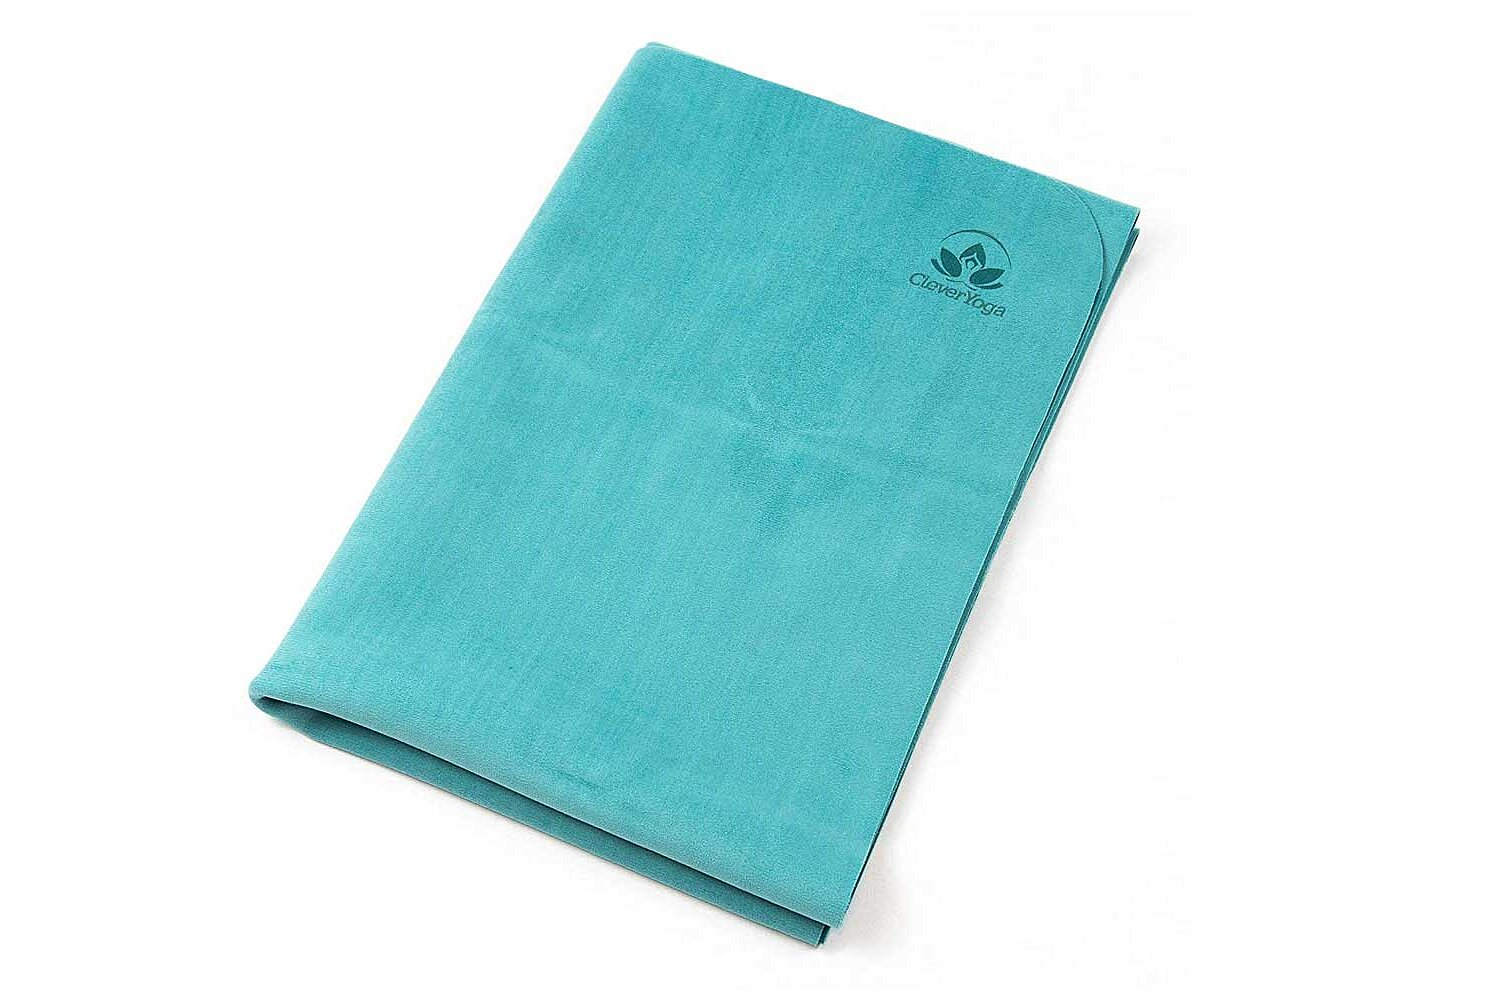 Best Travel Yoga Mats Travel Leisure Travel Leisure